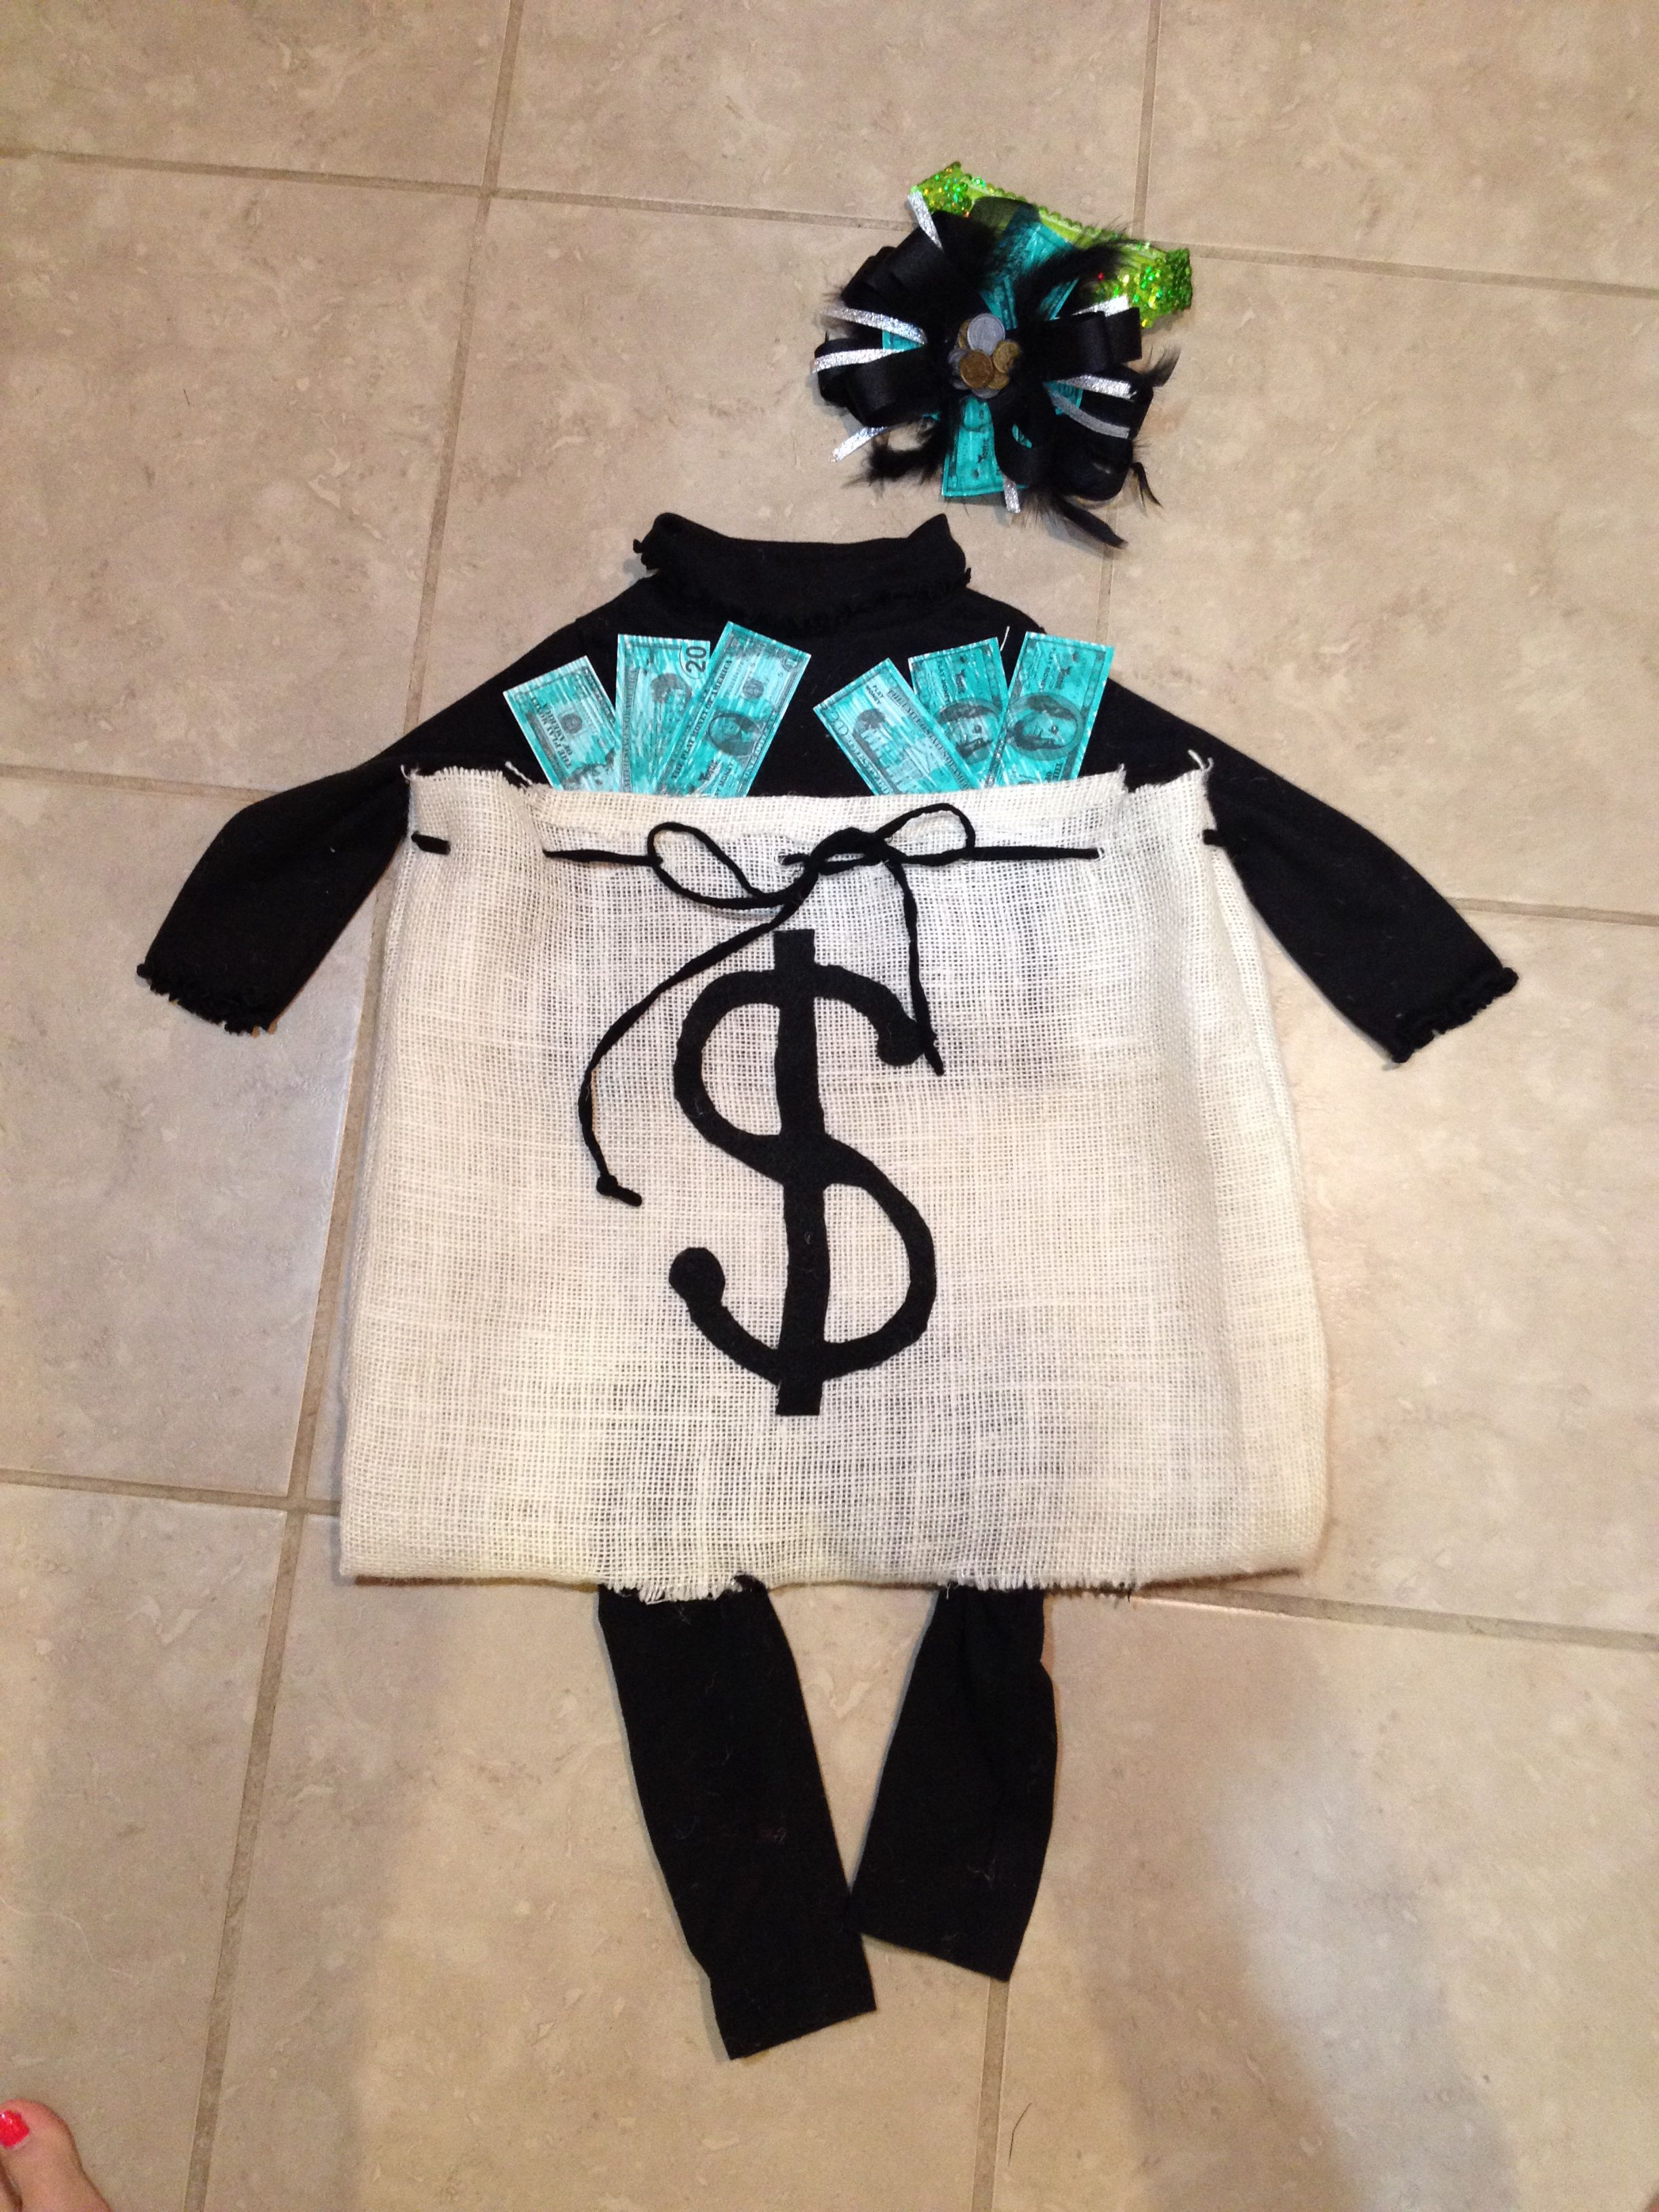 Diy Bank Robber Shirt Diy Bank Robber Sack Costume For My 10month Old Vera All Hand Made